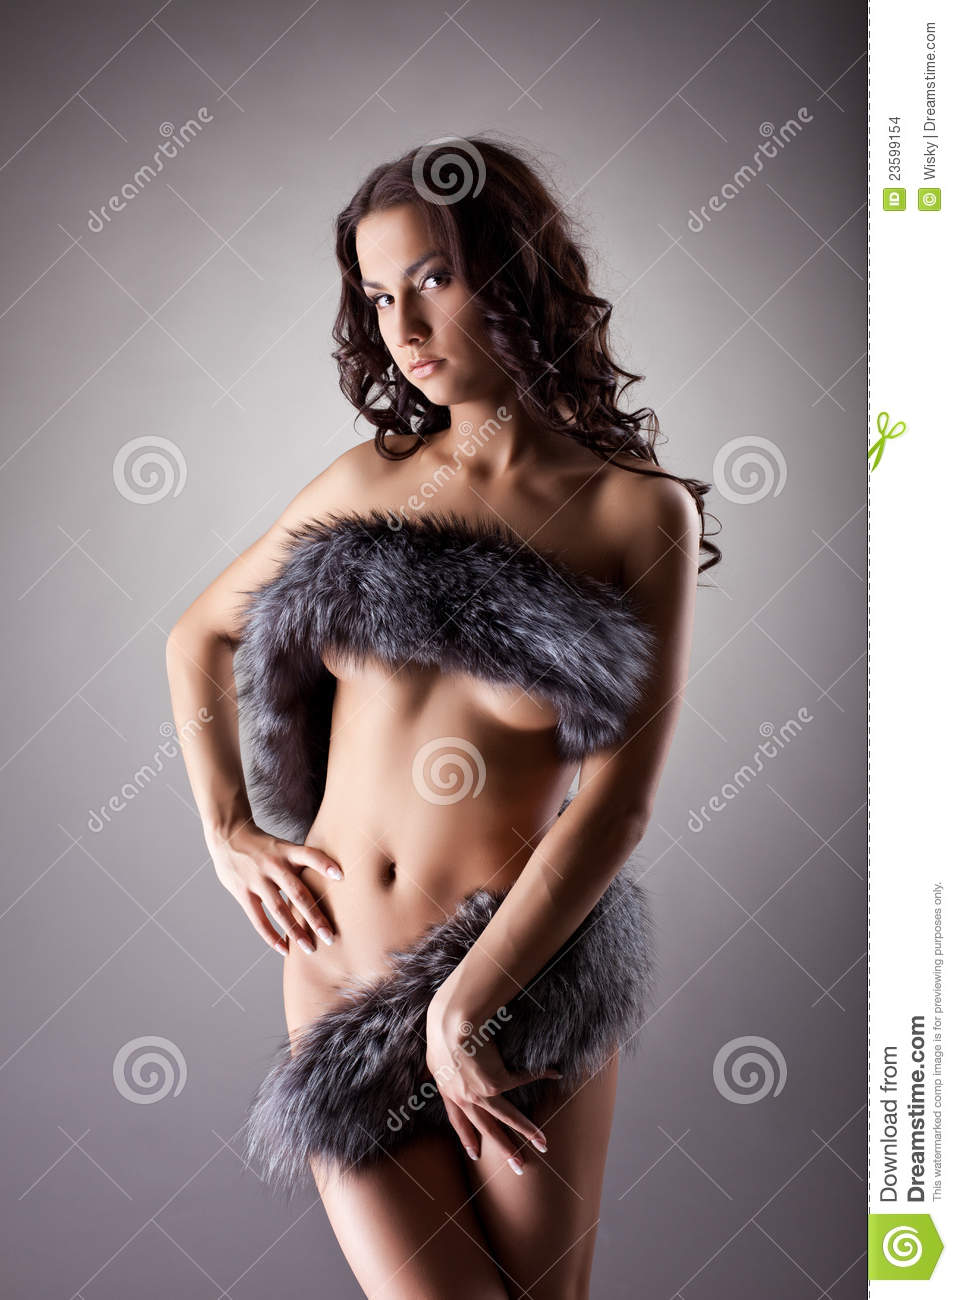 Women in fur nude have hit